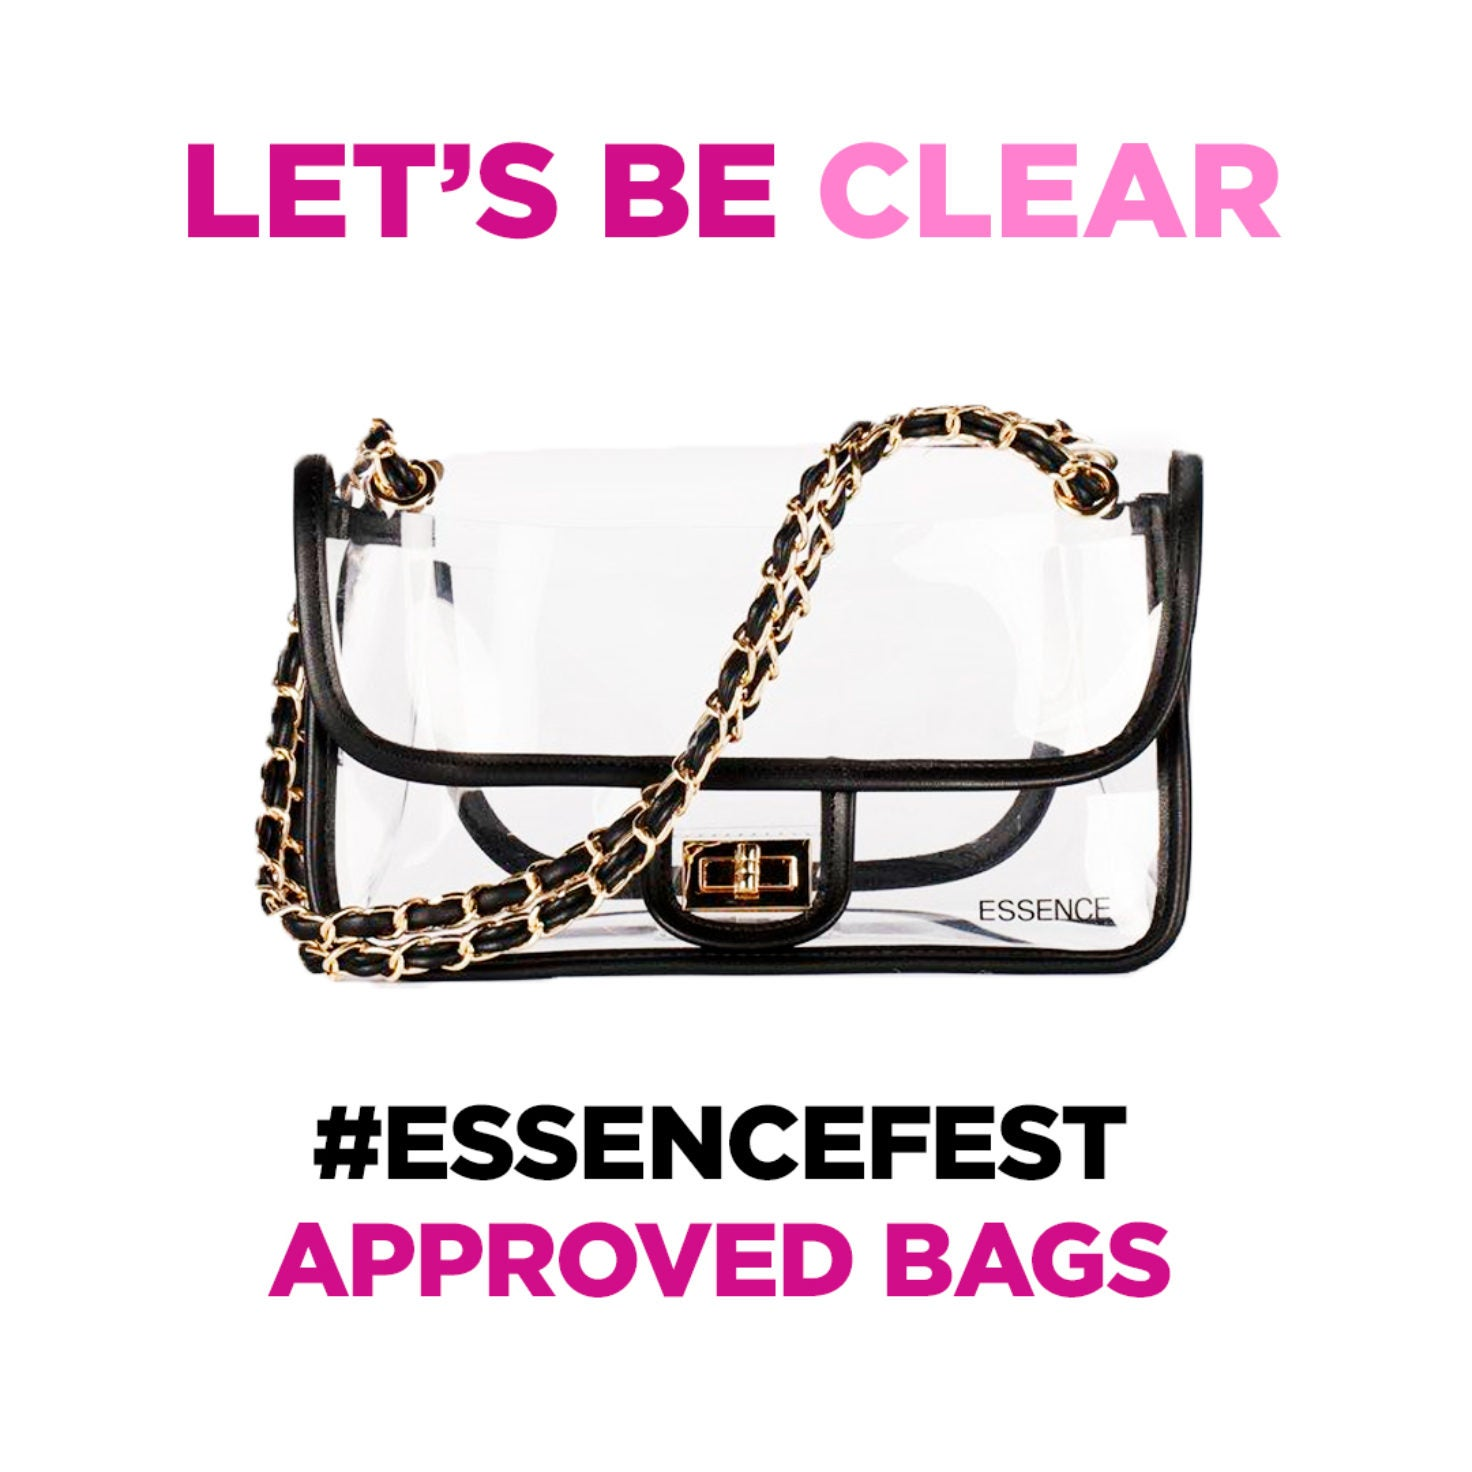 2 Things You Absolutely Need to Know Before Essence Festival